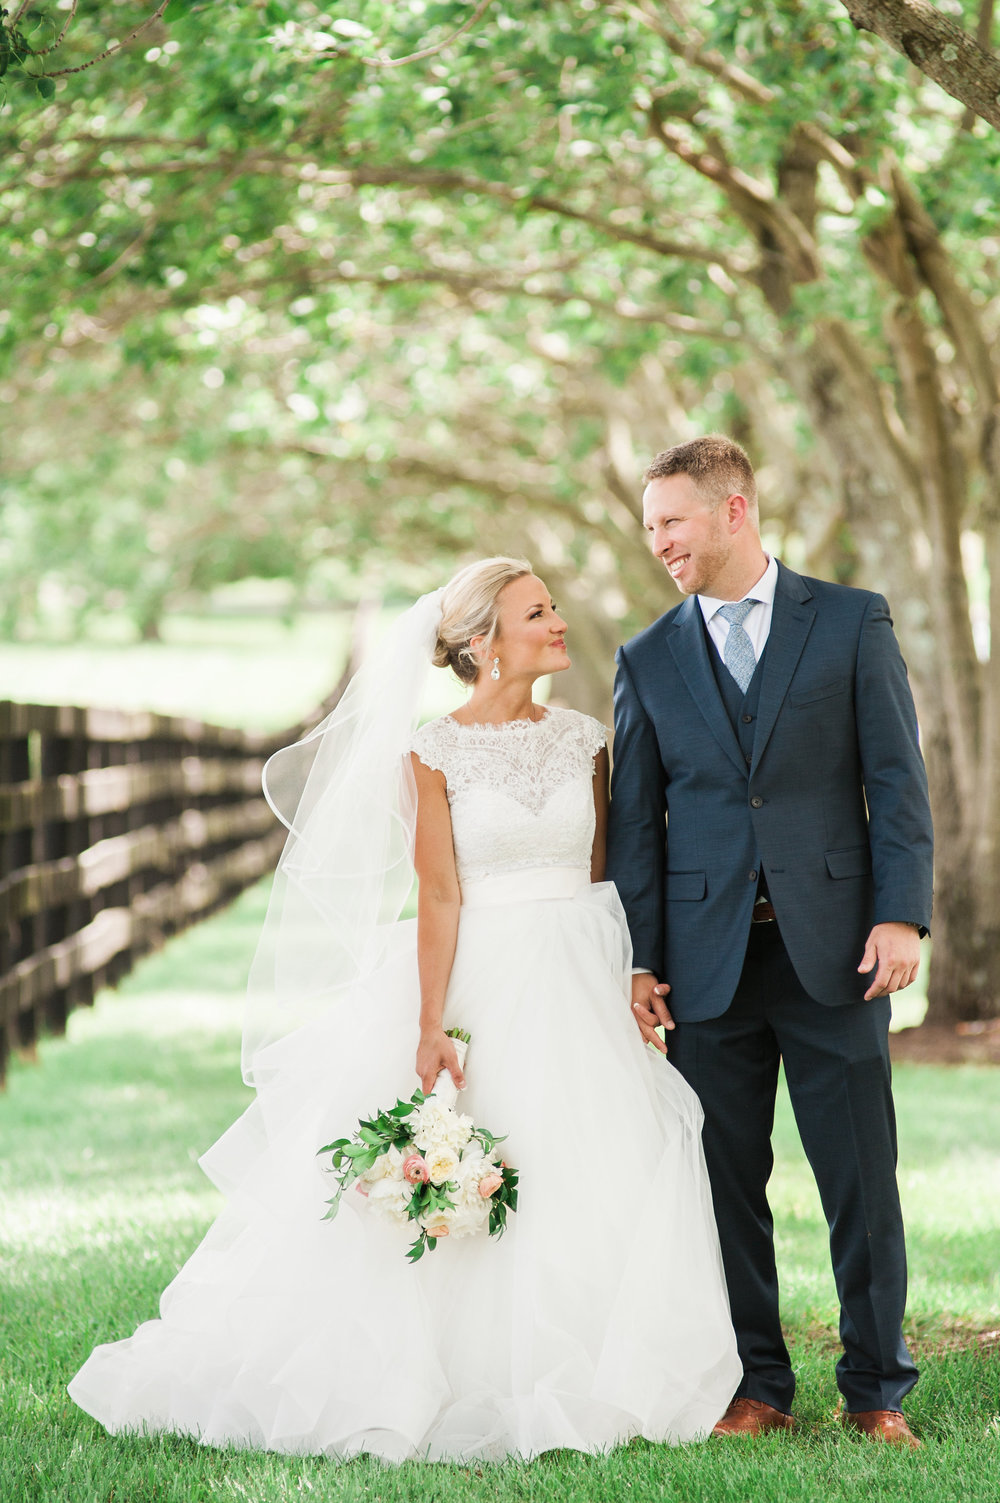 Emily Moseley Photography Weddings Lexington Kentucky Wedding Photographer